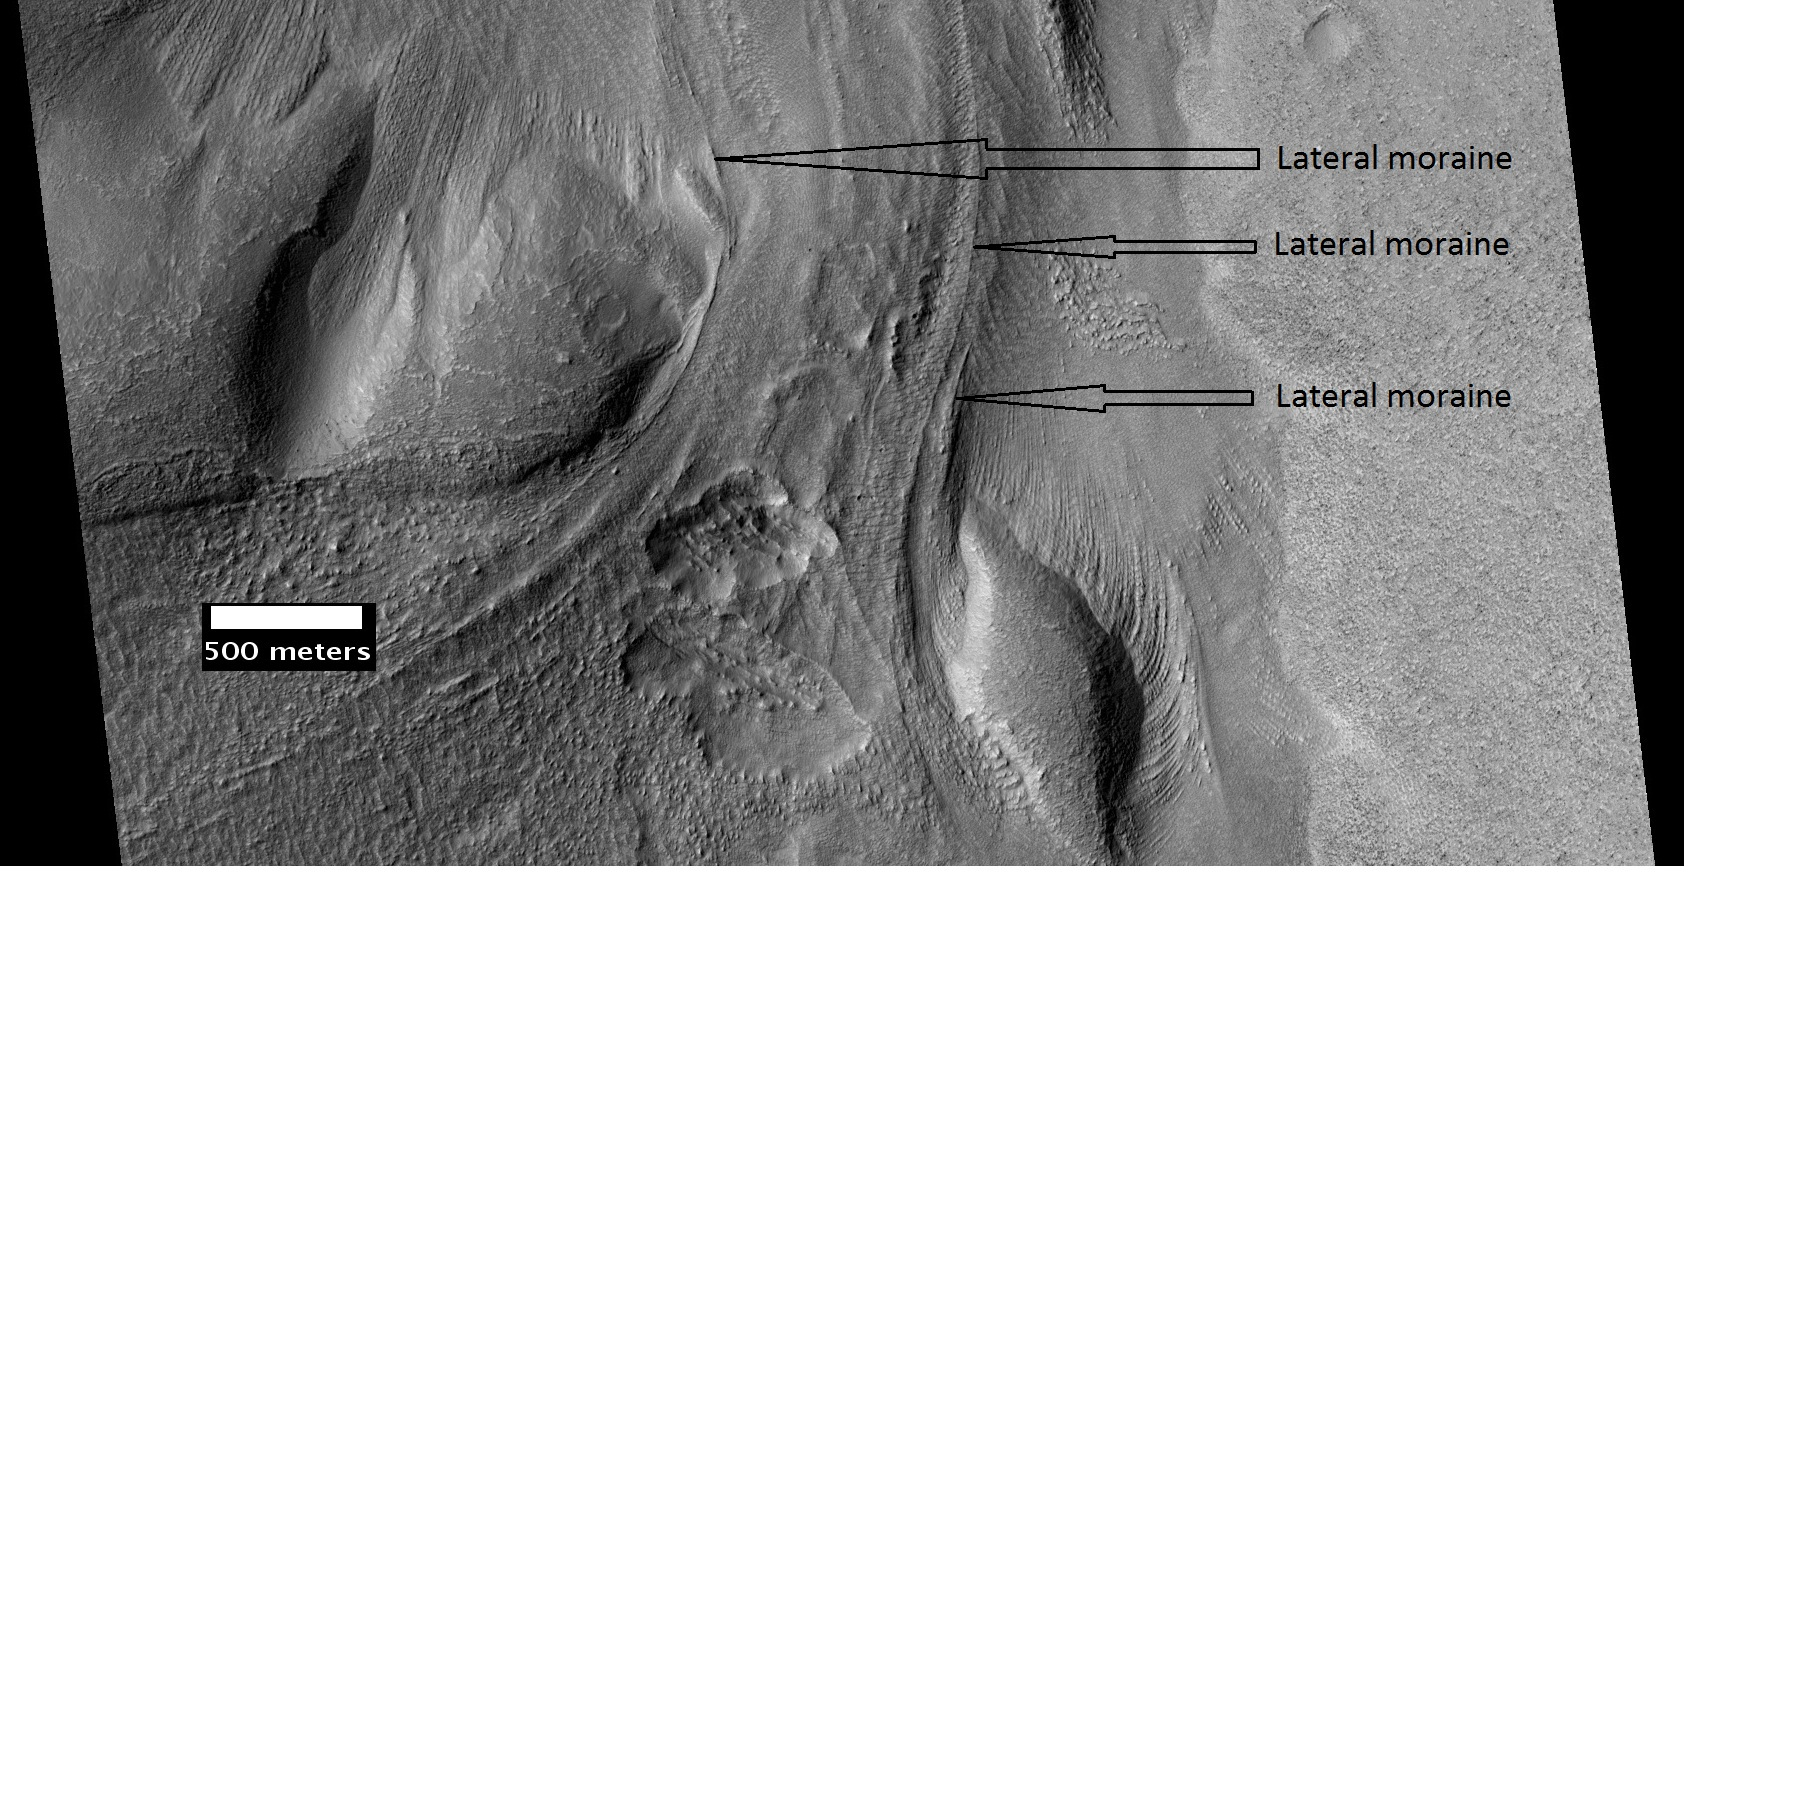 Material Flowing through a crater rim Lateral moraines are labeled.